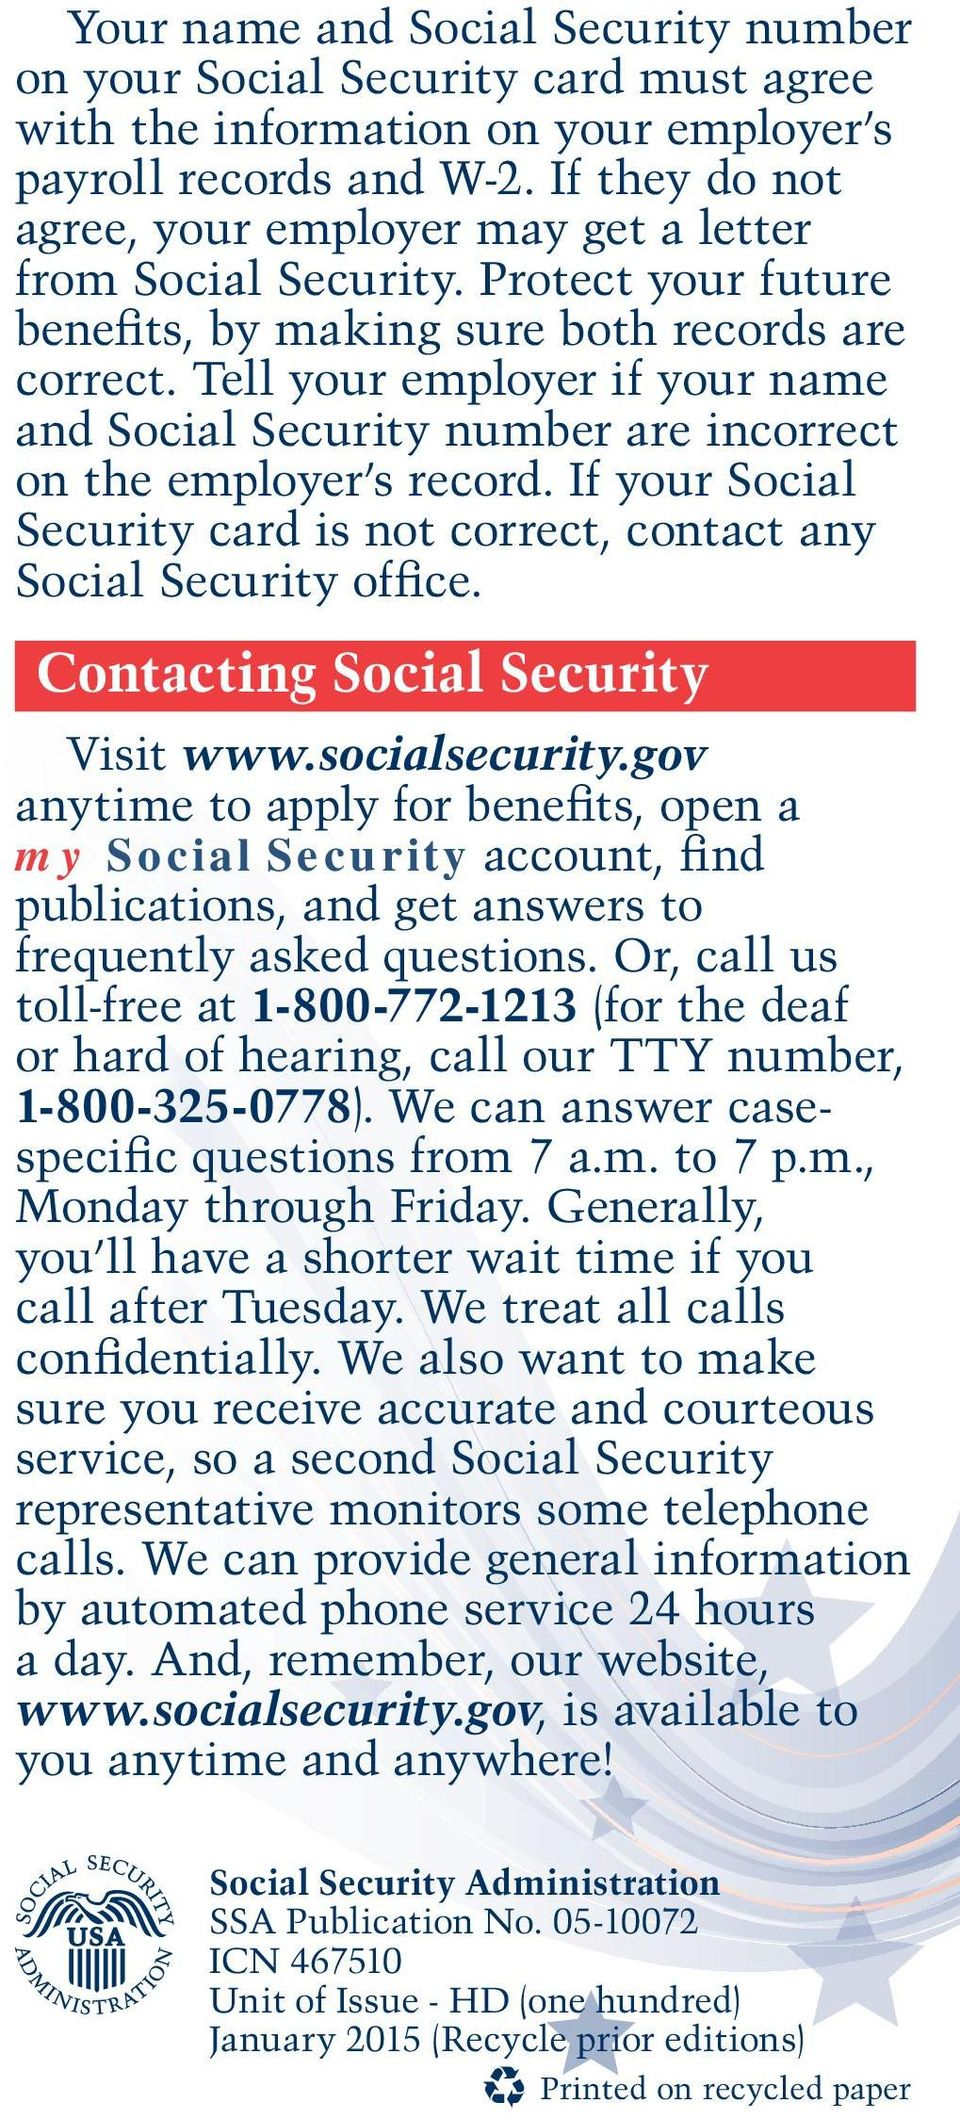 Tell your employer if your name and Social Security number are incorrect on the employer s record. If your Social Security card is not correct, contact any Social Security office.